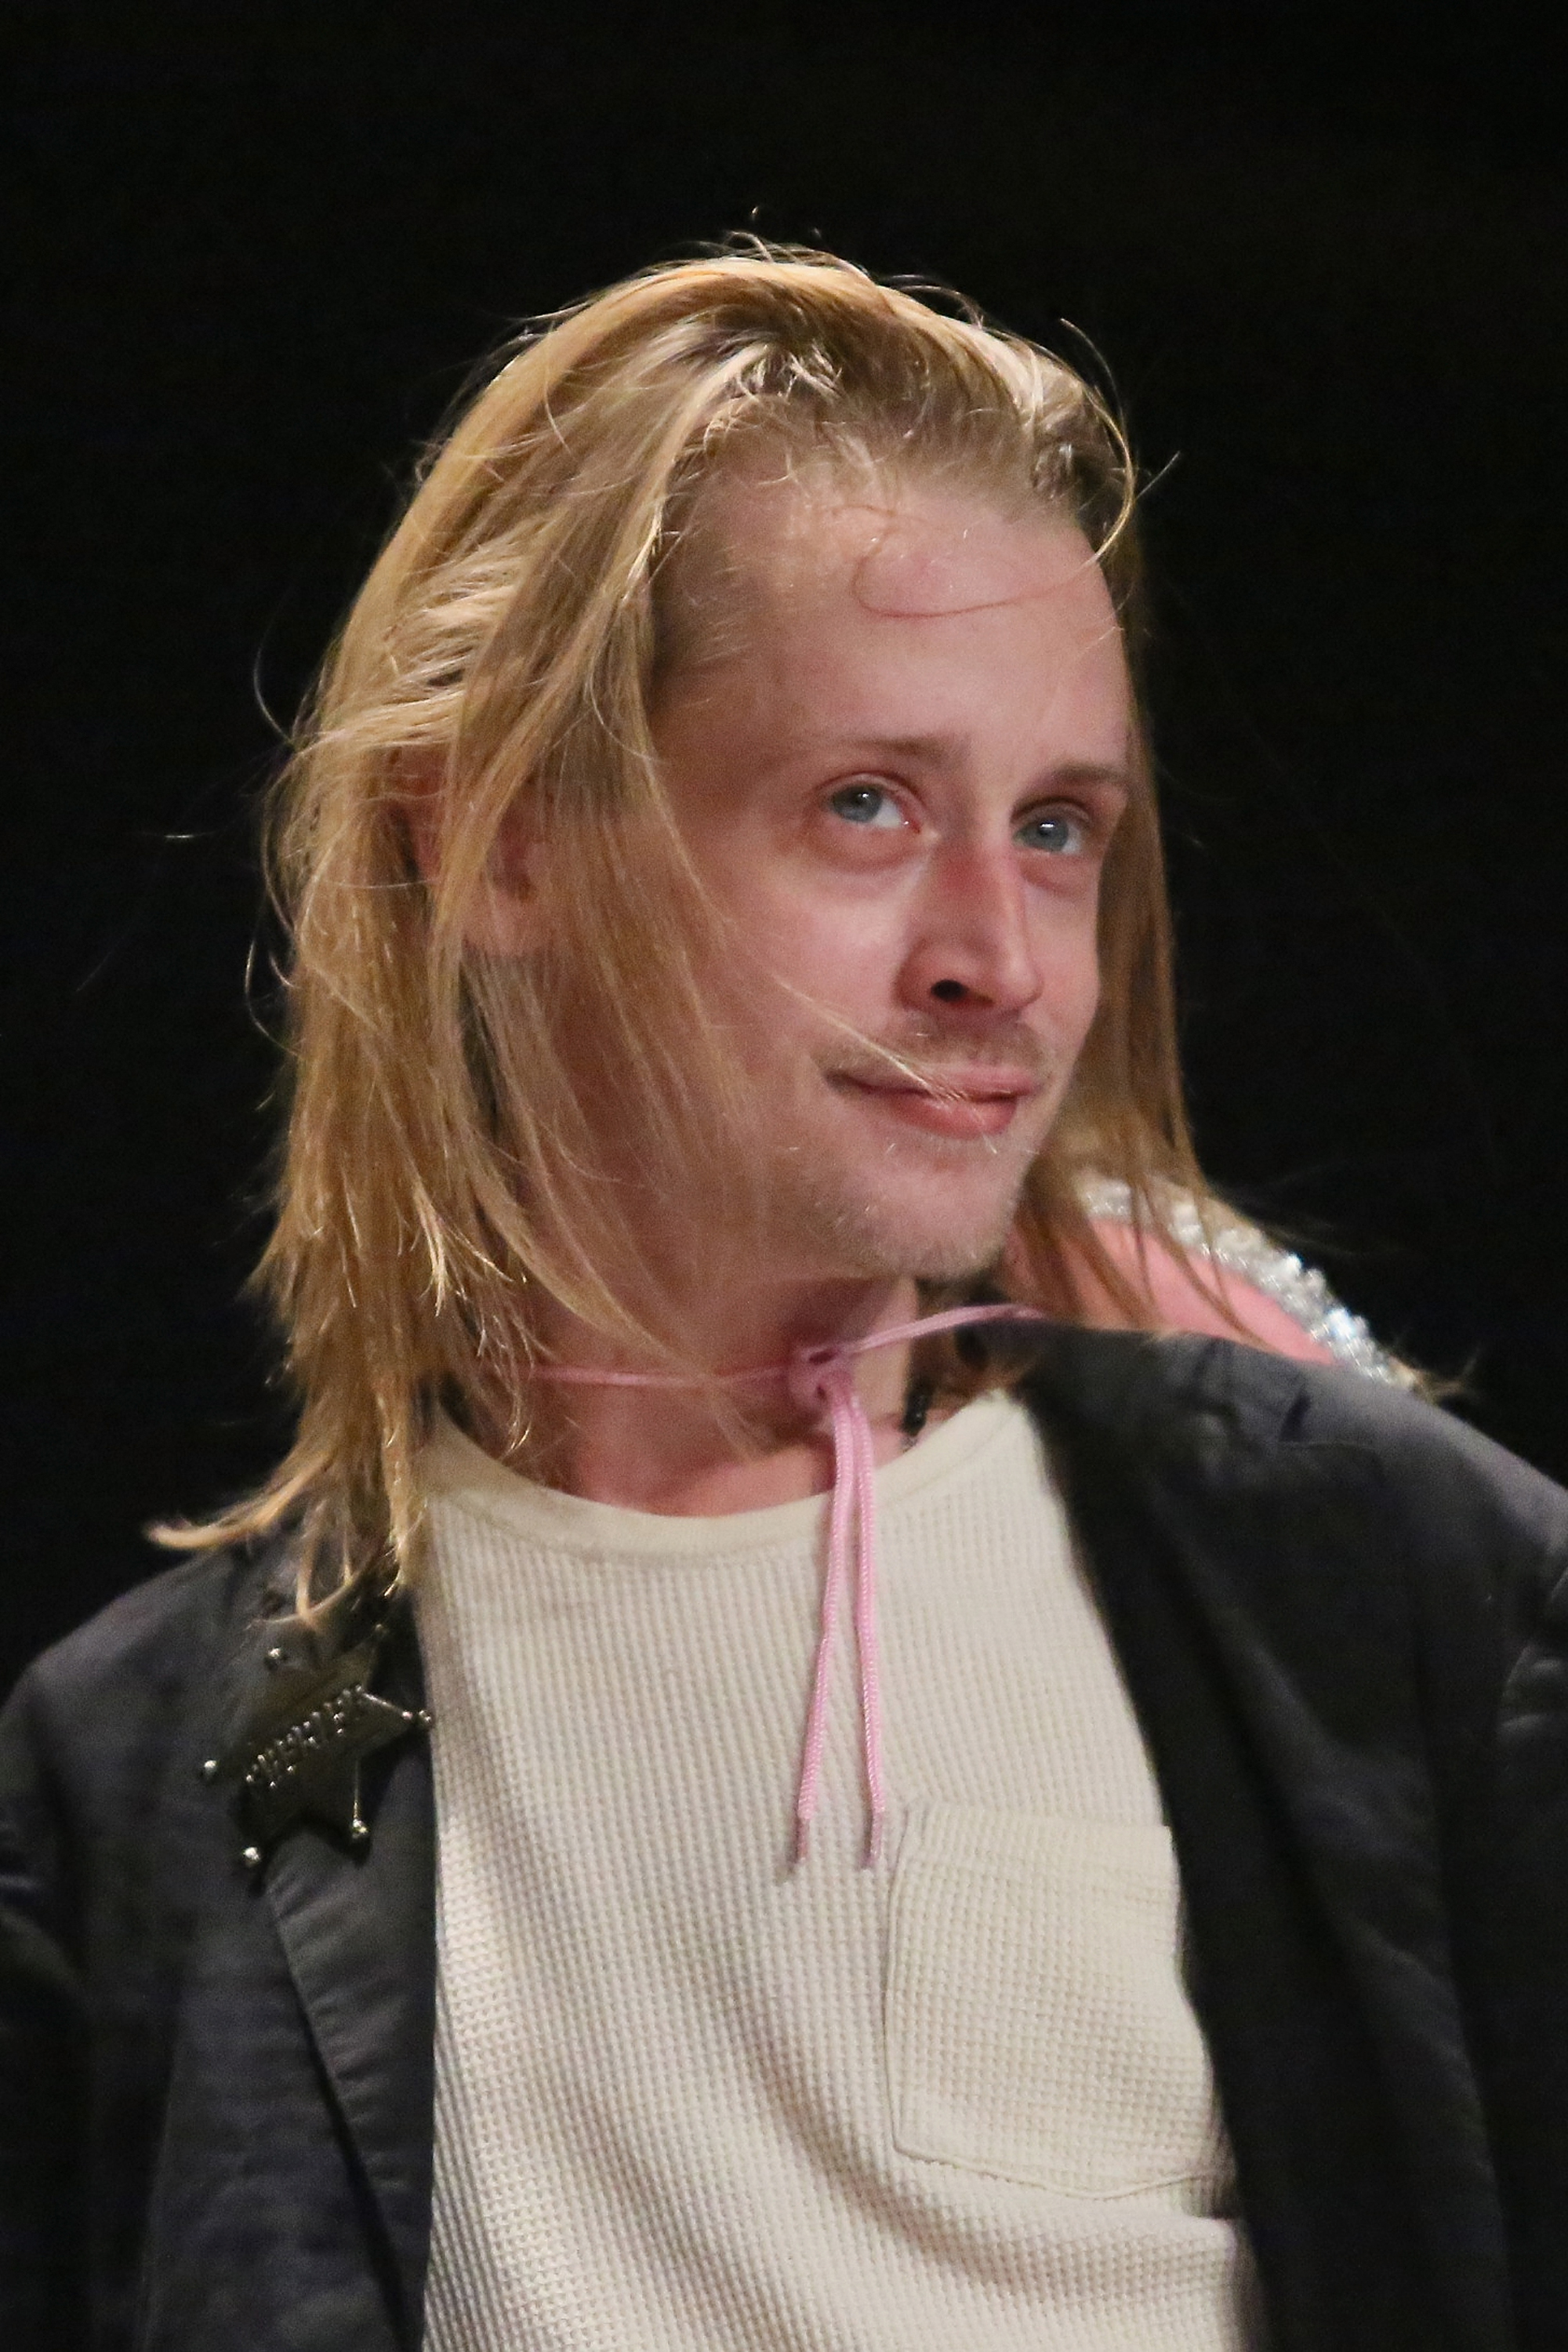 The Home Alone Cast - Where Are They Now